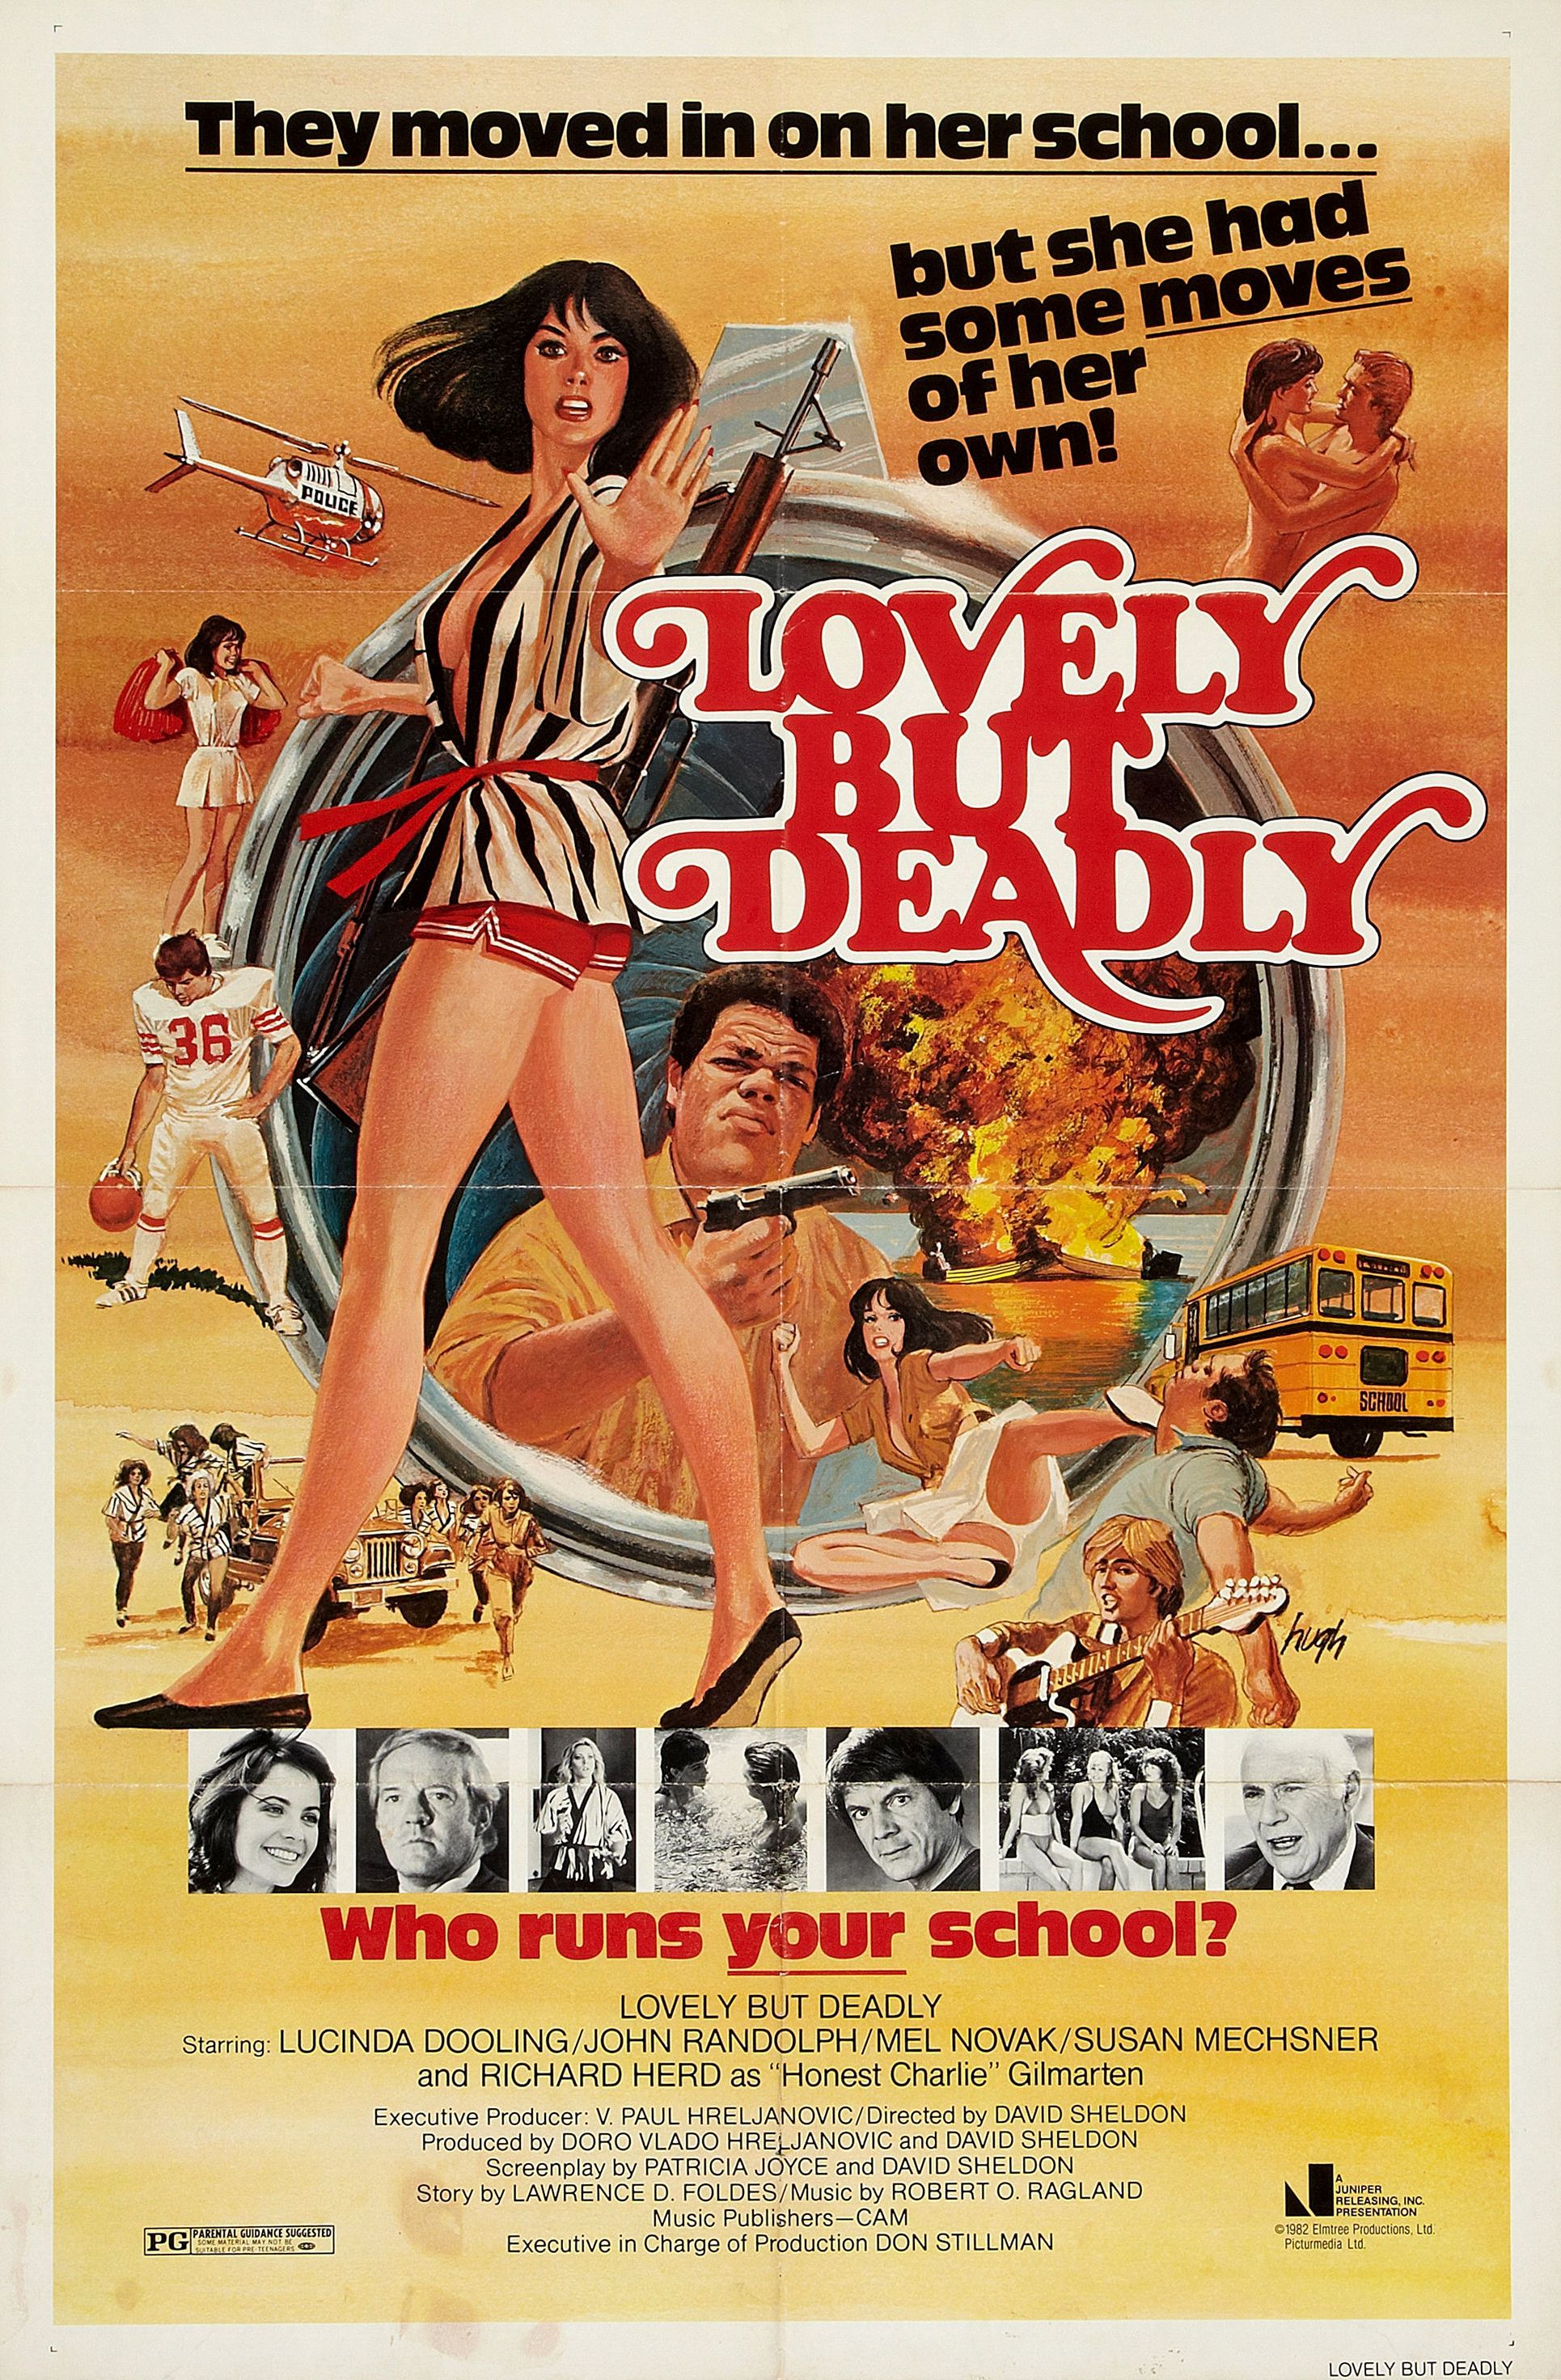 Lovely But Deadly - Lucinda Dooling - USA (1981)